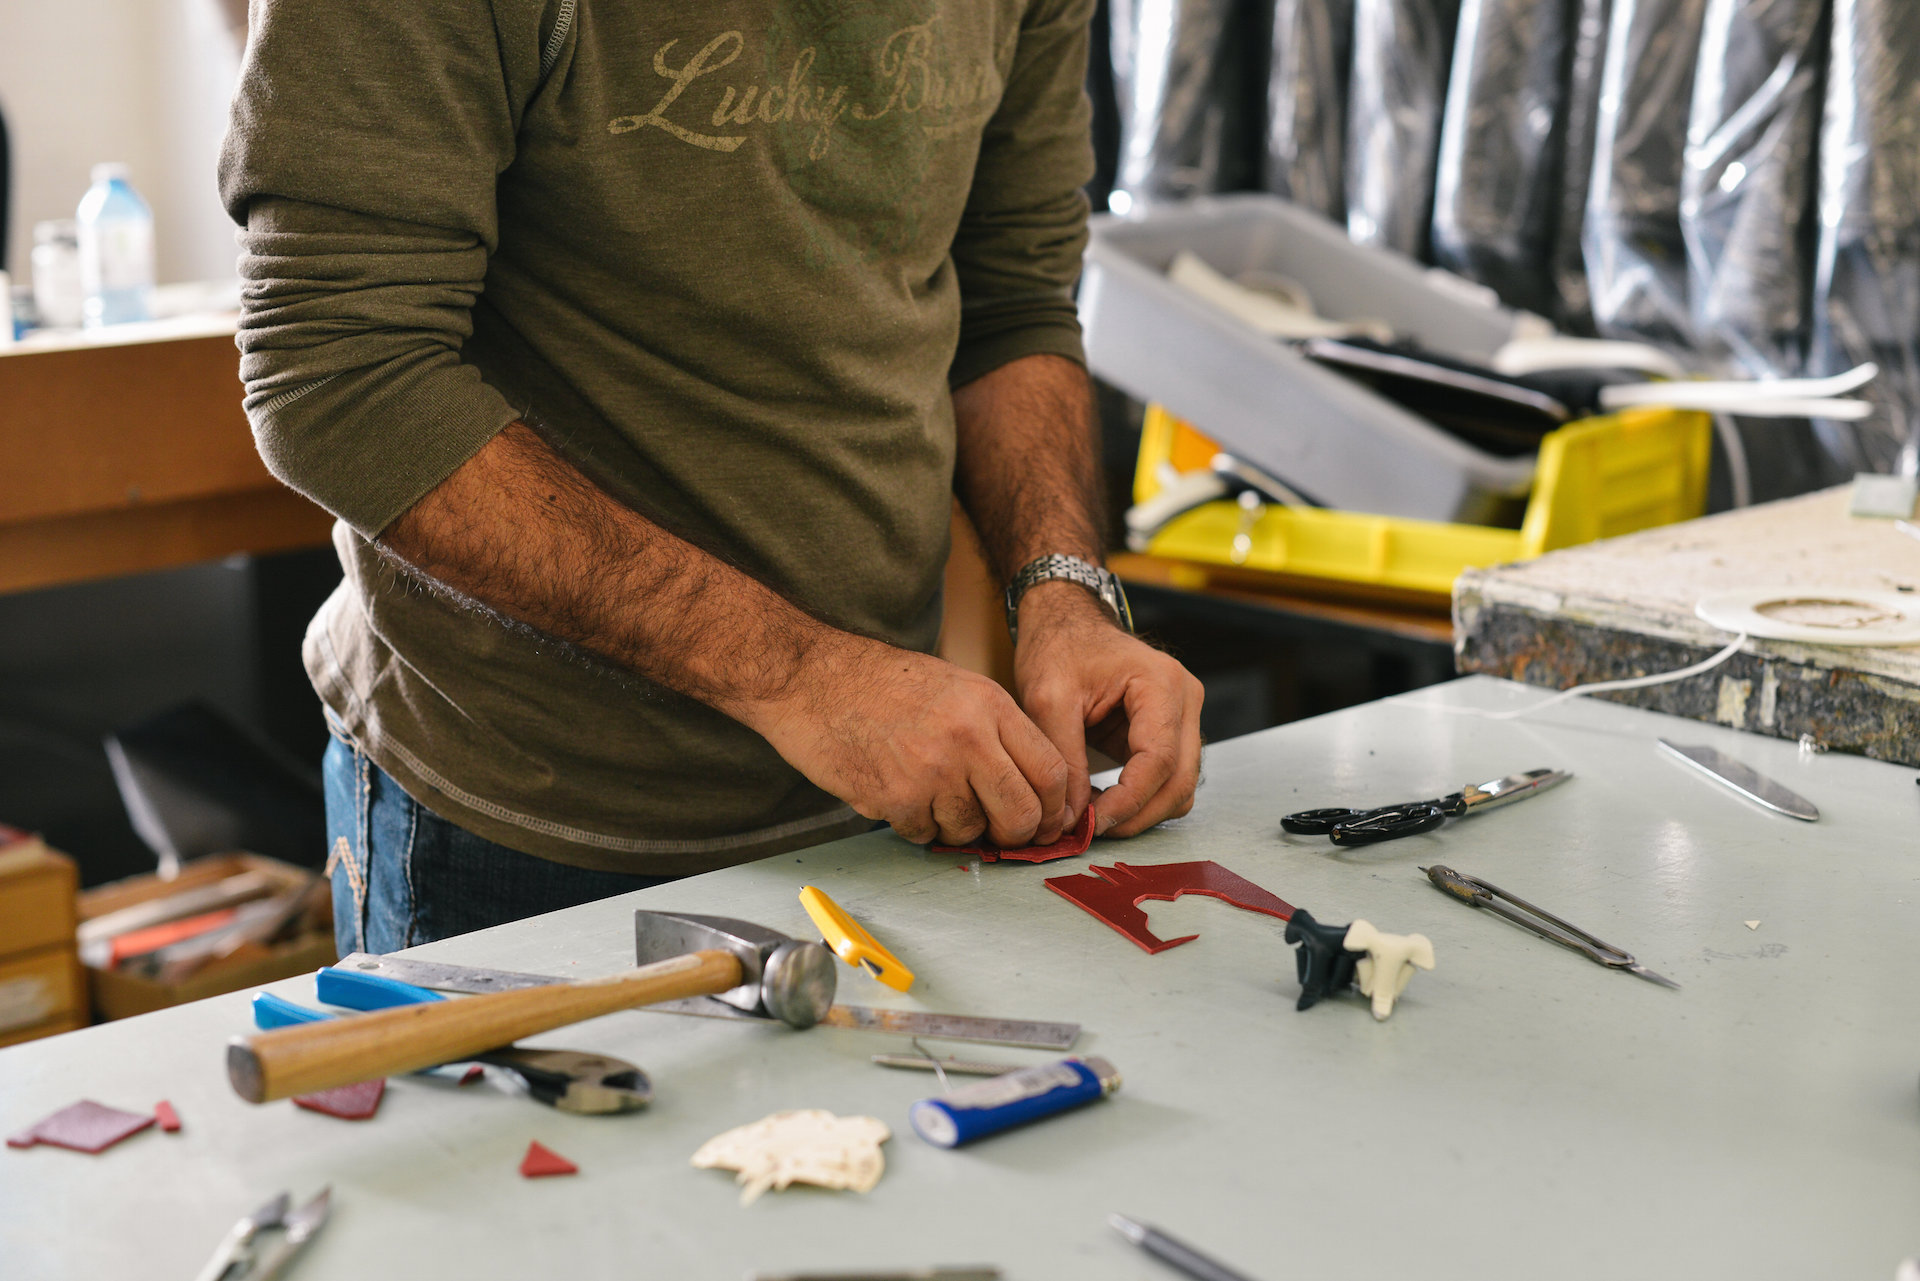 Man hands over a workspace crafting. Tools lie on the counter space next to him.